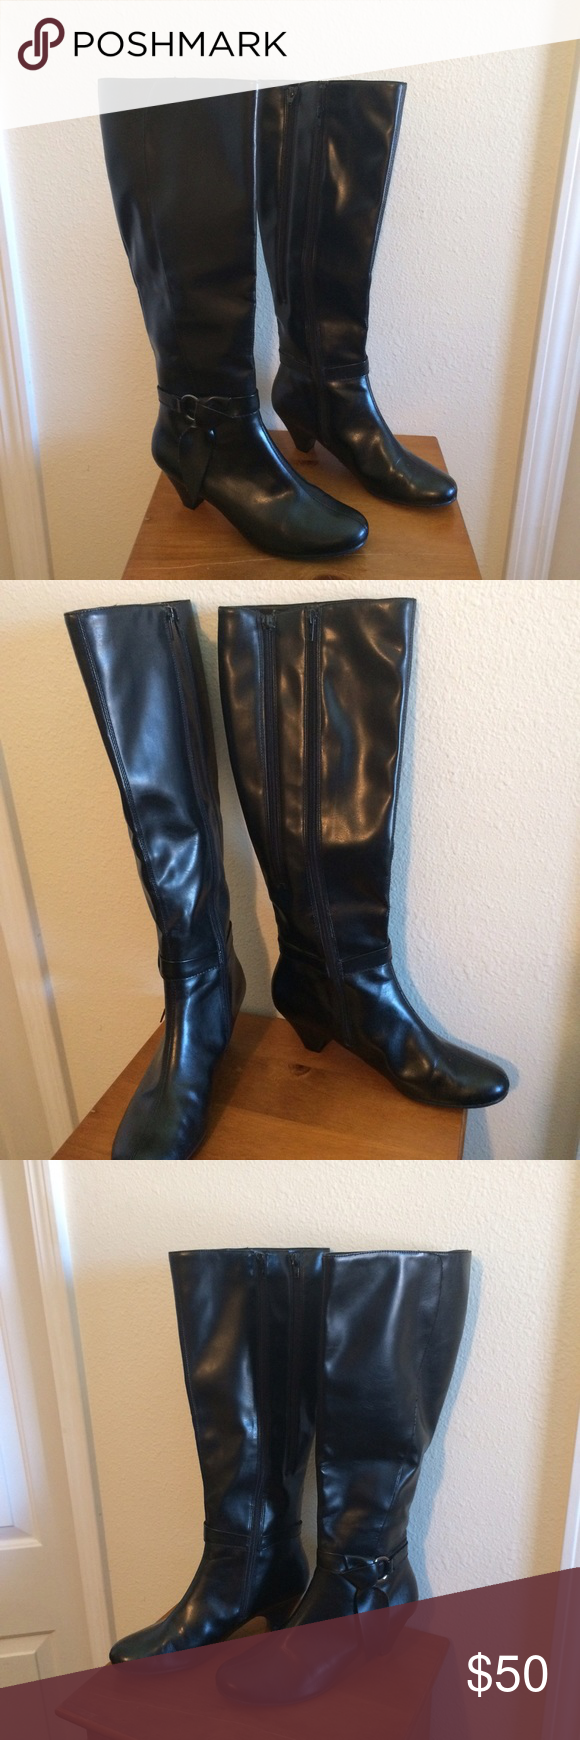 "Gorgeous Aerosoles boots Tall black boots that will go with just about anything. Barely worn because they don't fit me right. Double zipper allows for extra calf room if you need it. Heel height is about 3"".  100% manmade materials, not leather. Smoke free home and thanks for looking! AEROSOLES Shoes Heeled Boots"